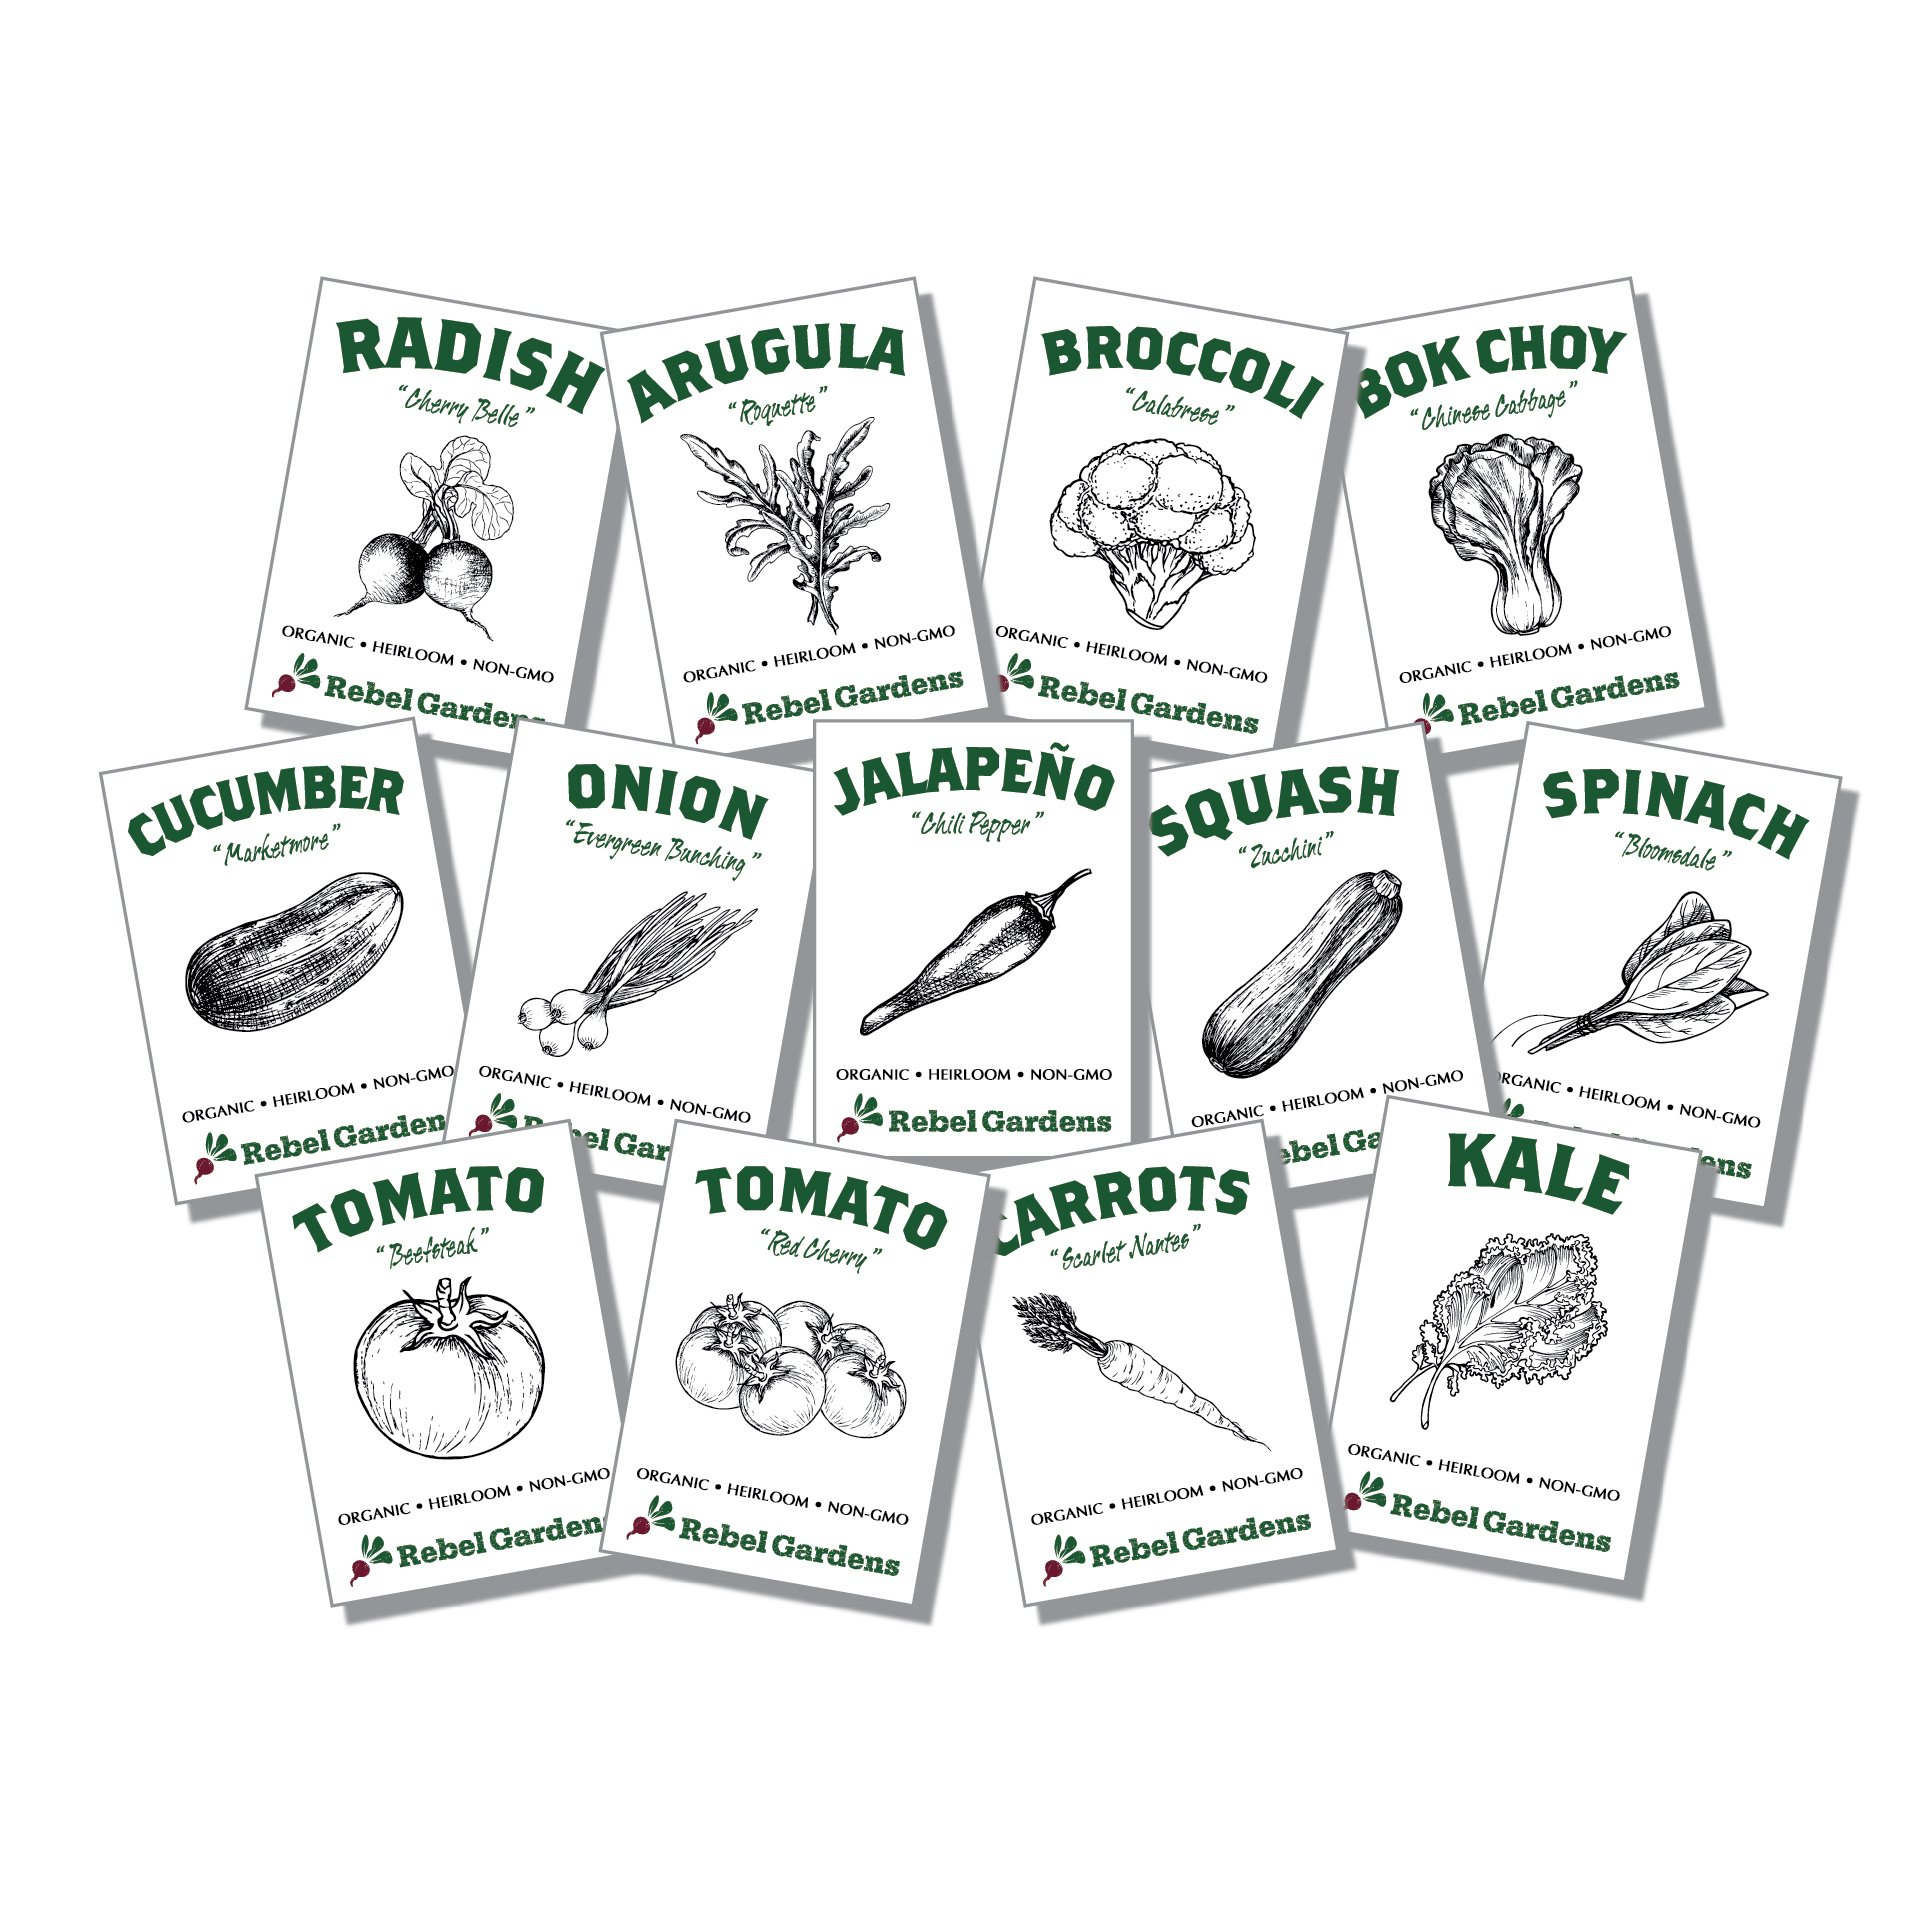 Organic Vegetable Seeds for Planting - 13 Varieties of Non GMO, Non Hybrid, Heirloom Seeds, Open Pollinated Garden Seeds - Tomatoes, Kale, Carrots, Broccoli, Arugula, and More by Rebel Gardens